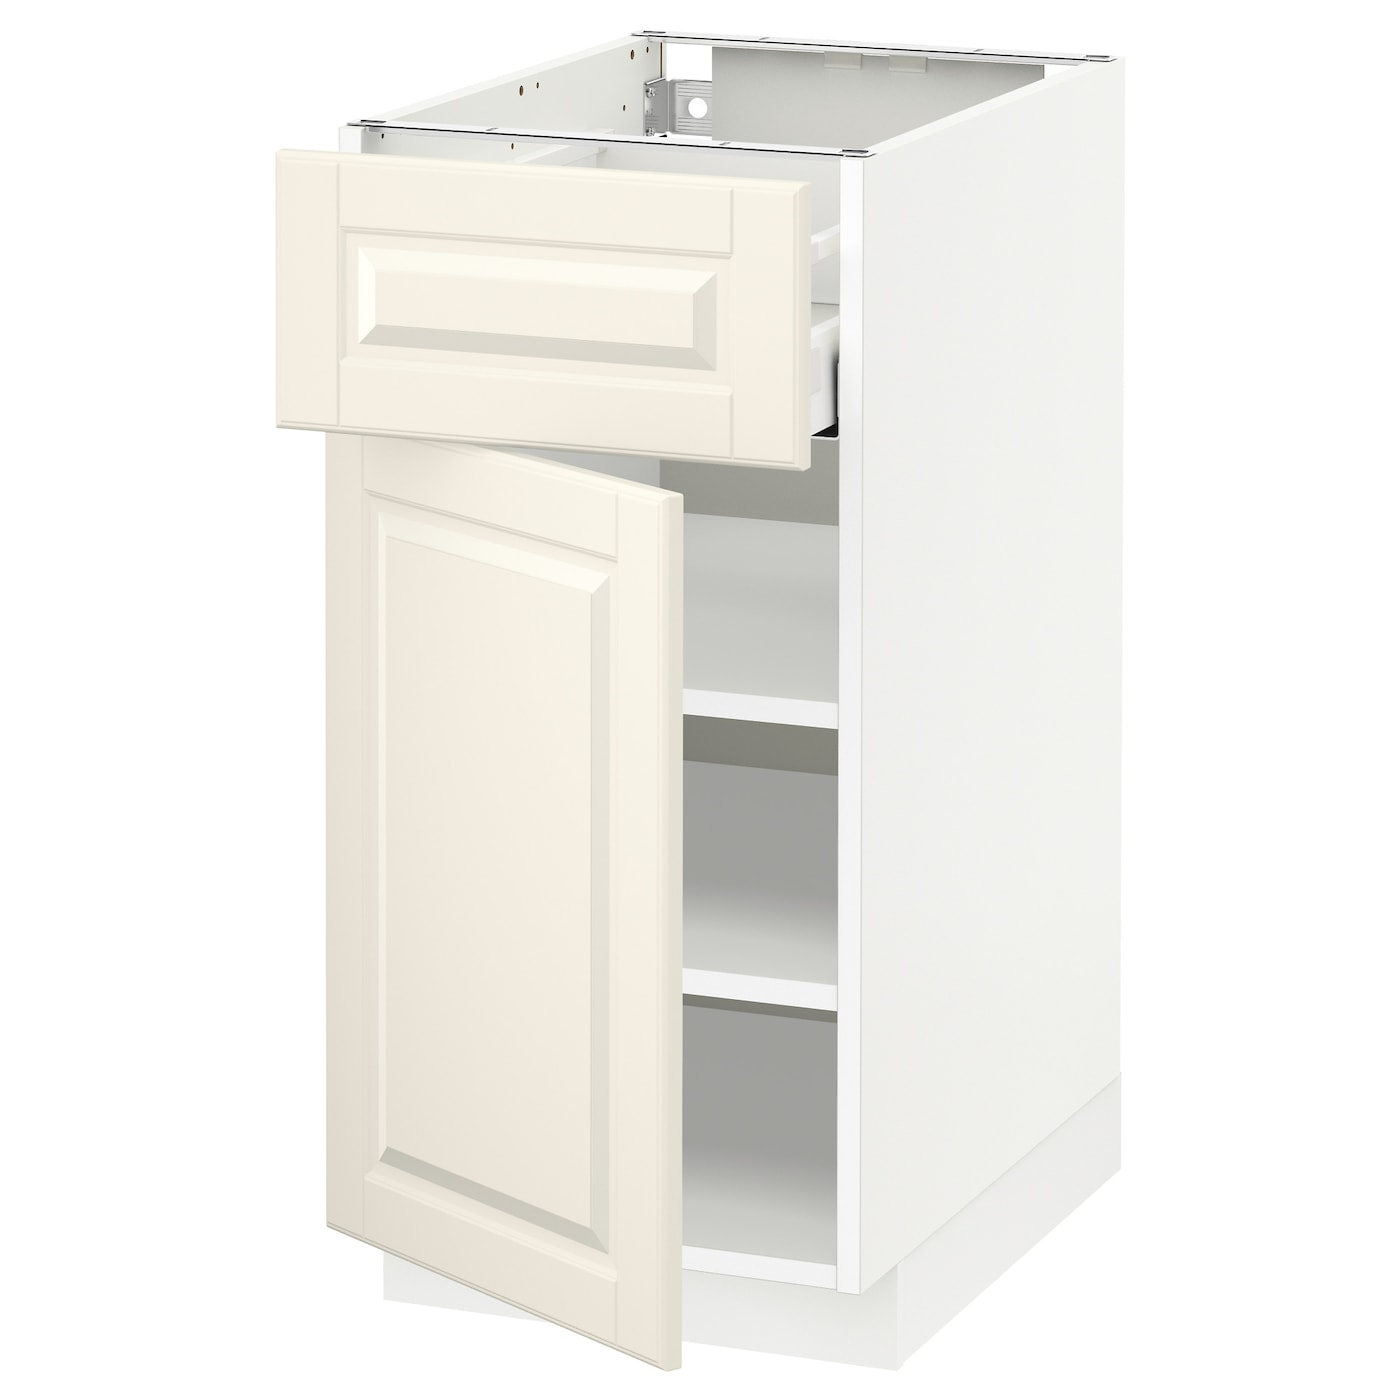 IKEA METOD/MAXIMERA base cabinet with drawer/door Smooth-running drawer with drawer stop.